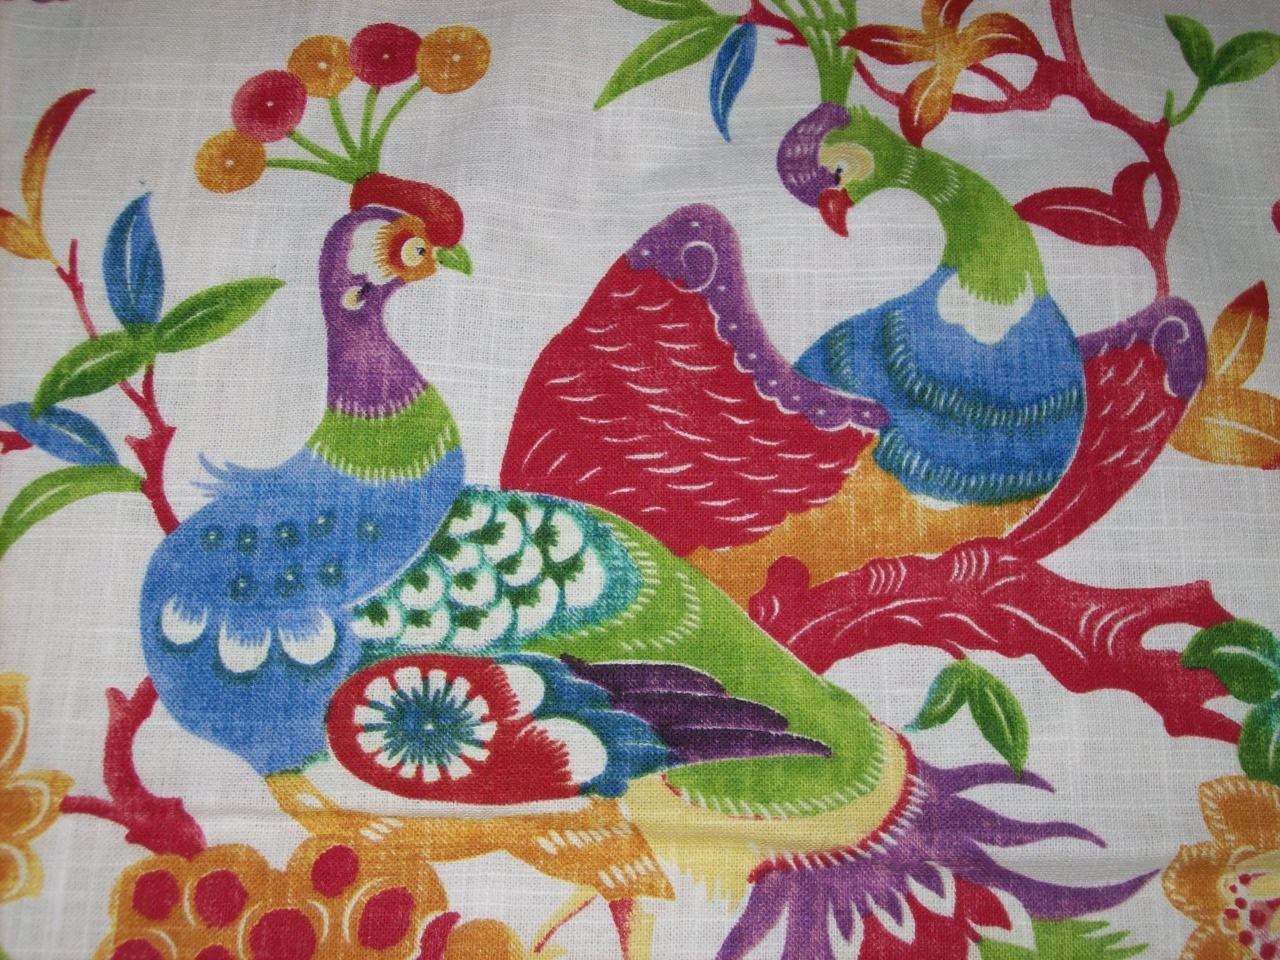 Majestic Peacock Upholstery Fabric By The Yard For Home Decor